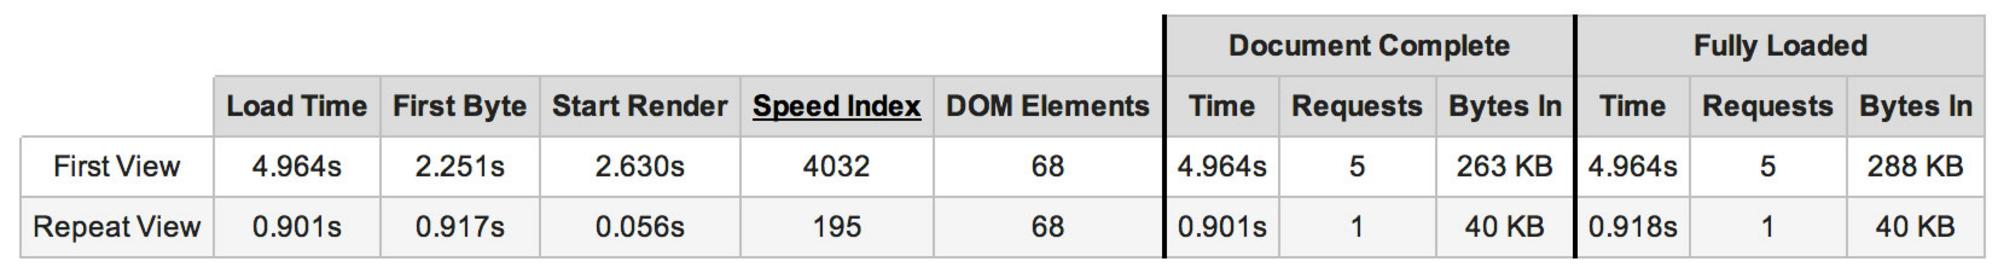 WebPageTest.org Times and Speed Index for Slow 3G Connection